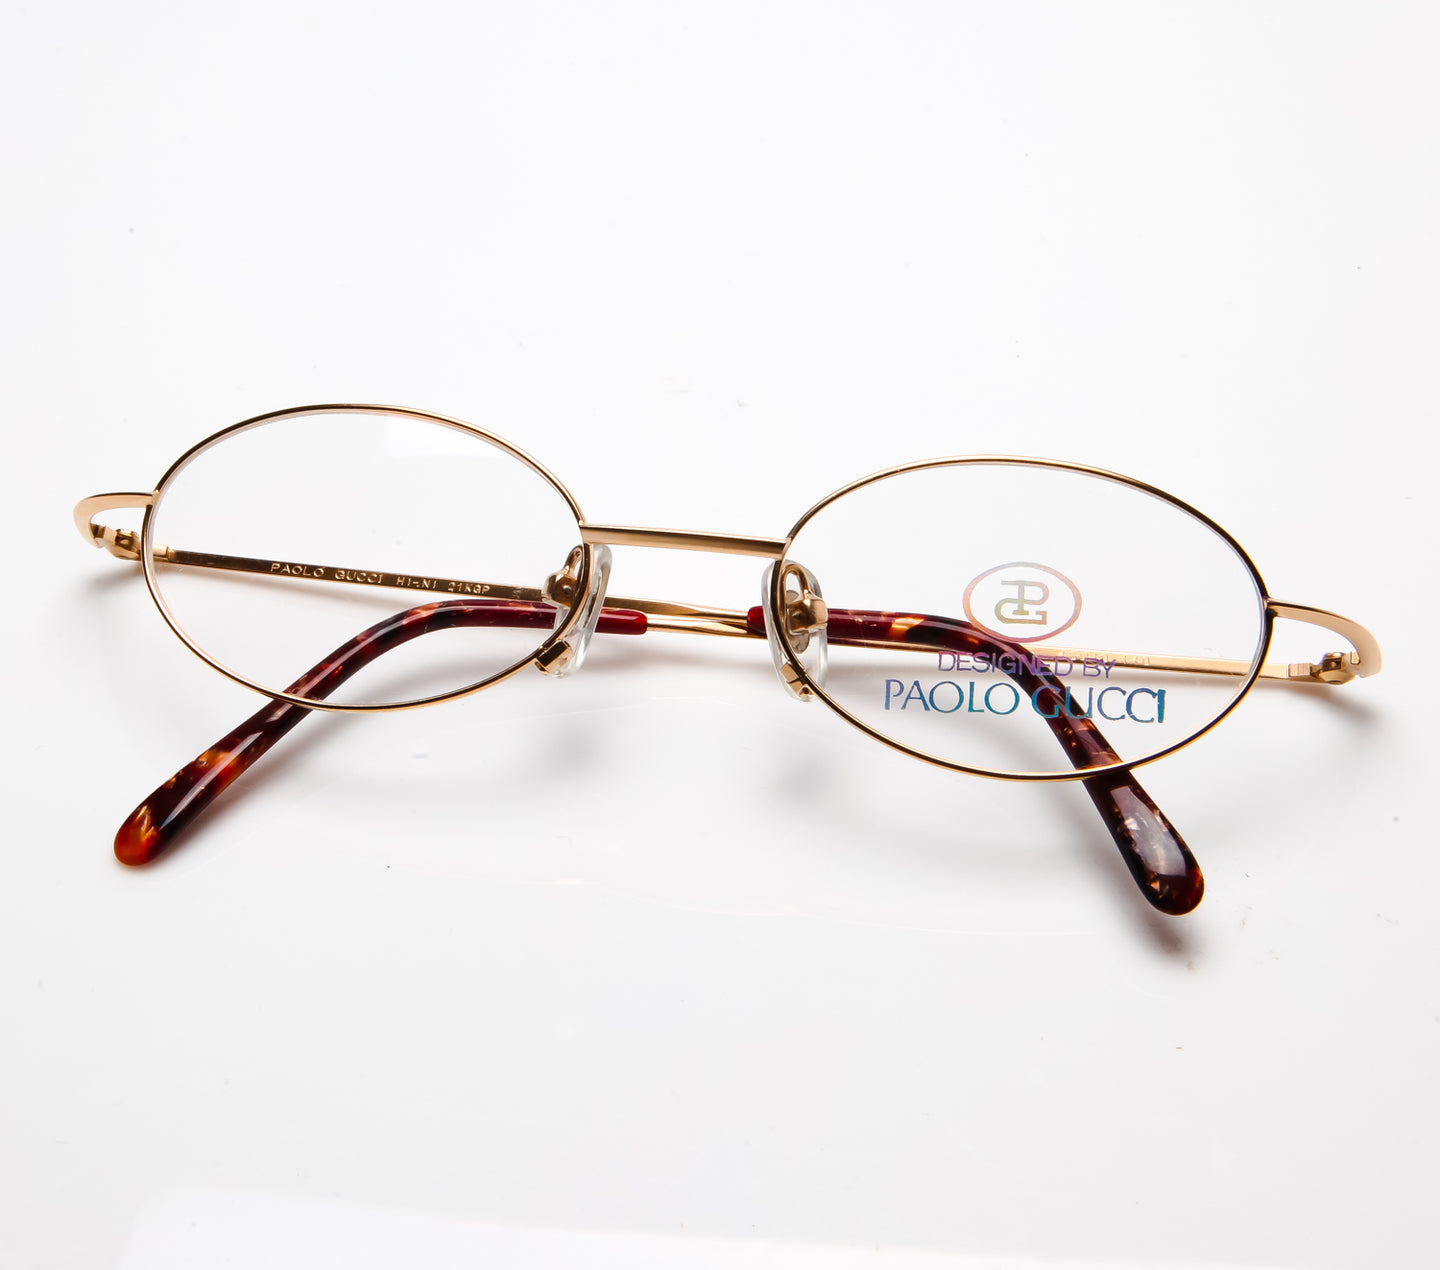 Paolo Gucci 7428R 21k Gold Plated (Clear Lens), Paolo Gucci , glasses frames, eyeglasses online, eyeglass frames, mens glasses, womens glasses, buy glasses online, designer eyeglasses, vintage sunglasses, retro sunglasses, vintage glasses, sunglass, eyeglass, glasses, lens, vintage frames company, vf